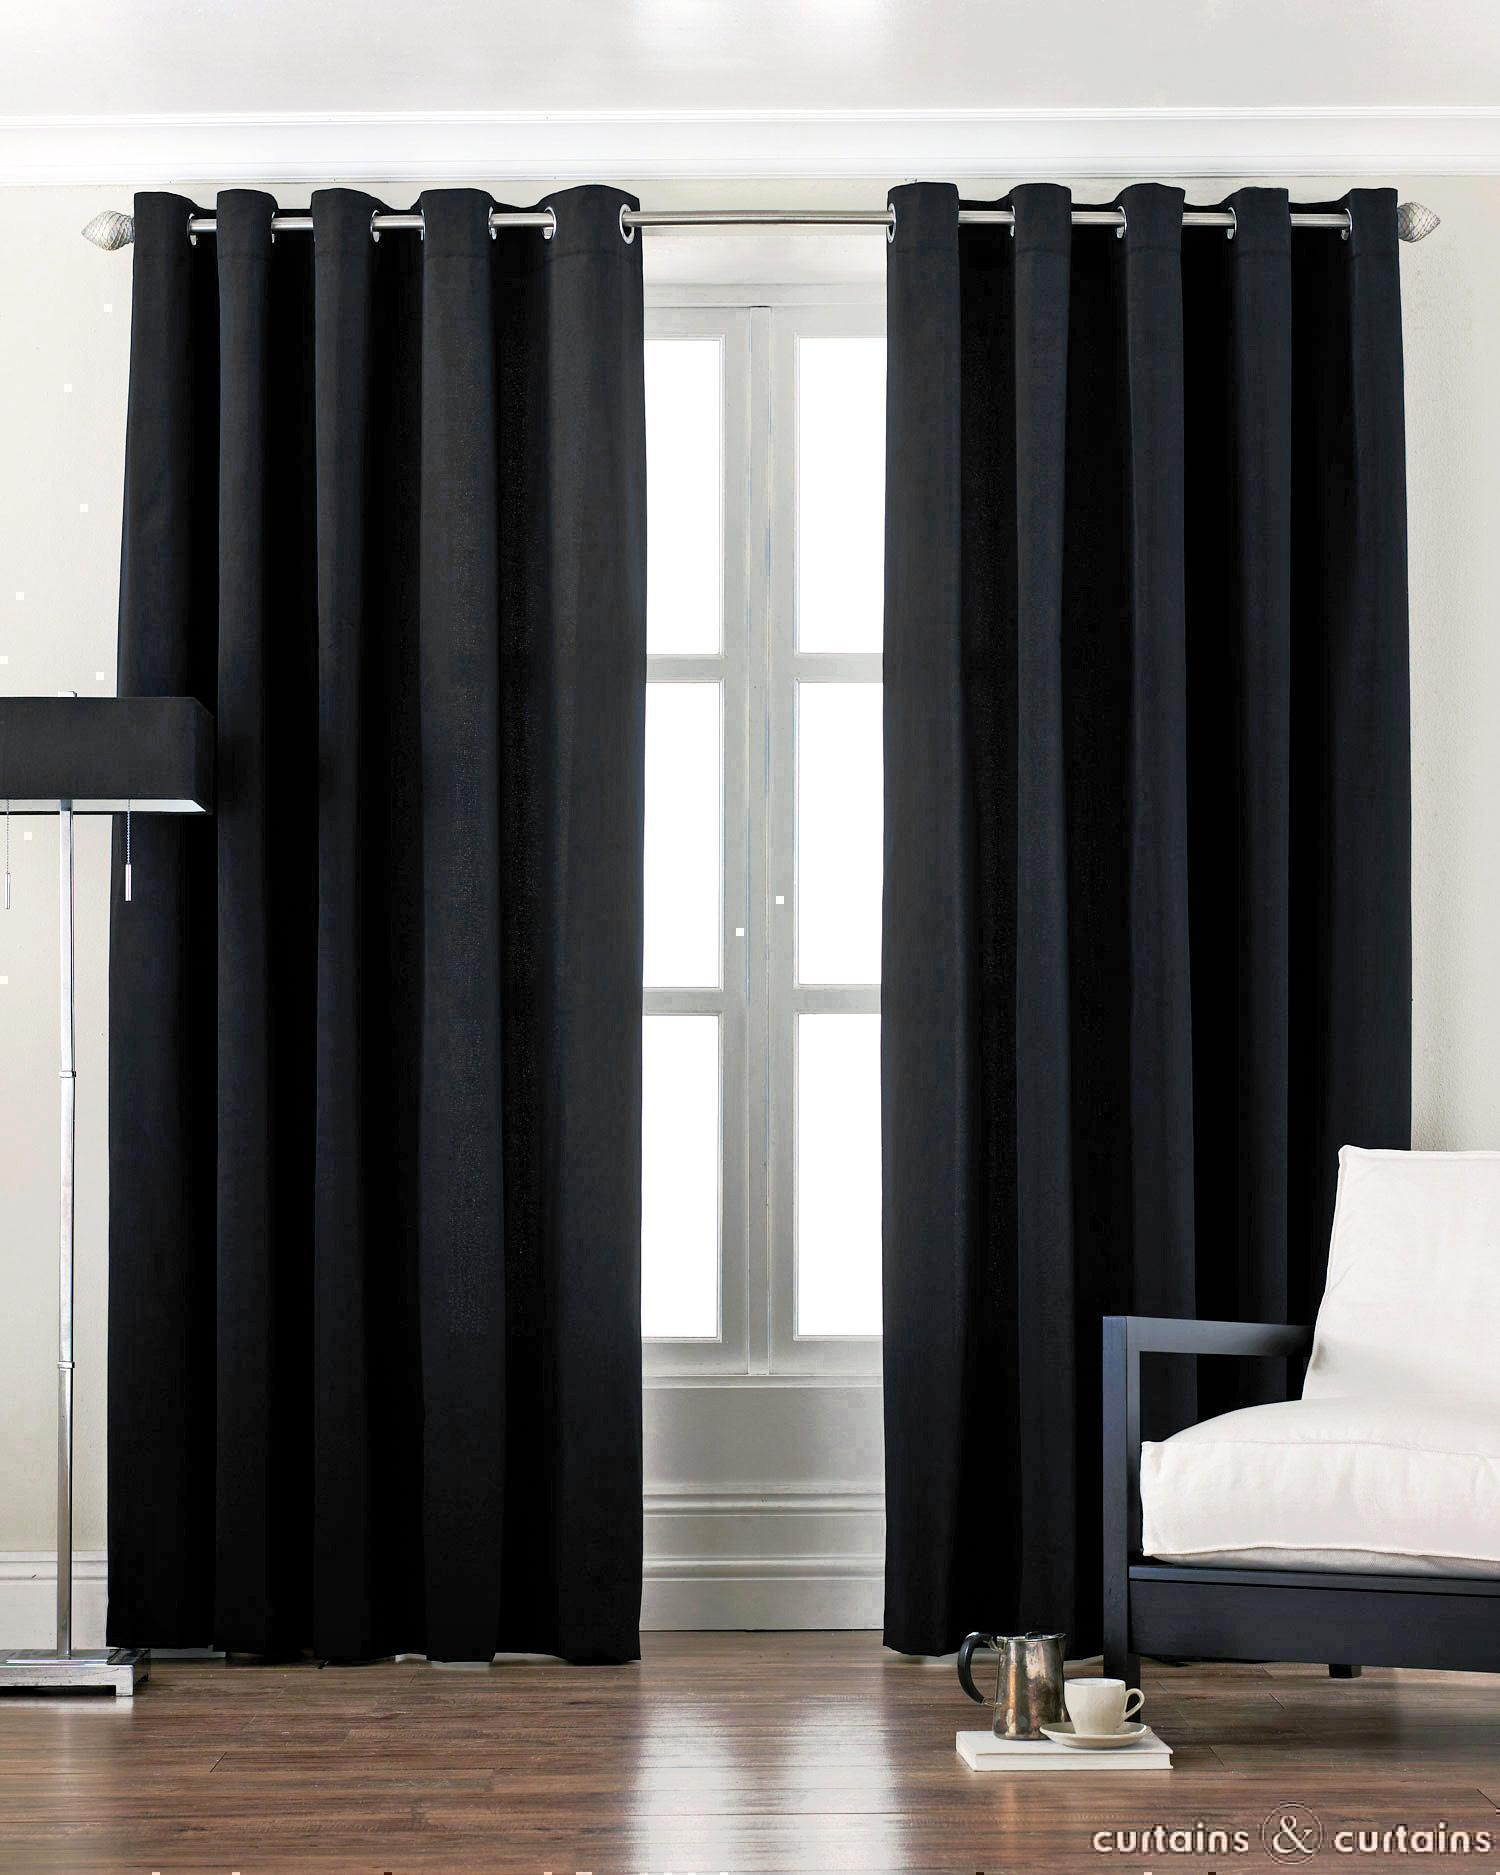 Bedroom curtains with valance Photo - 1